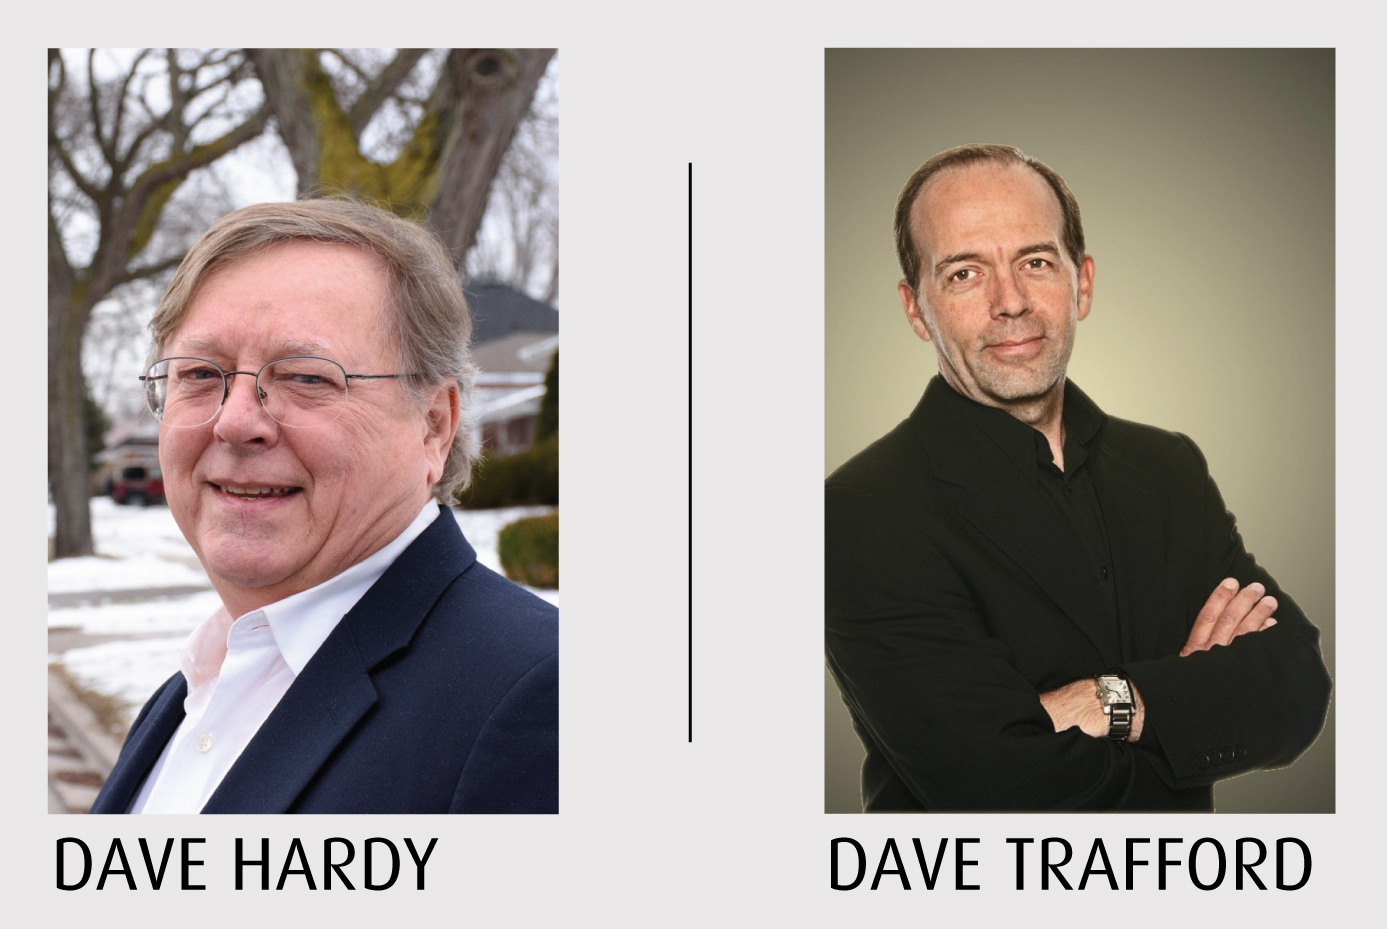 Dave Hardy and Dave Trafford